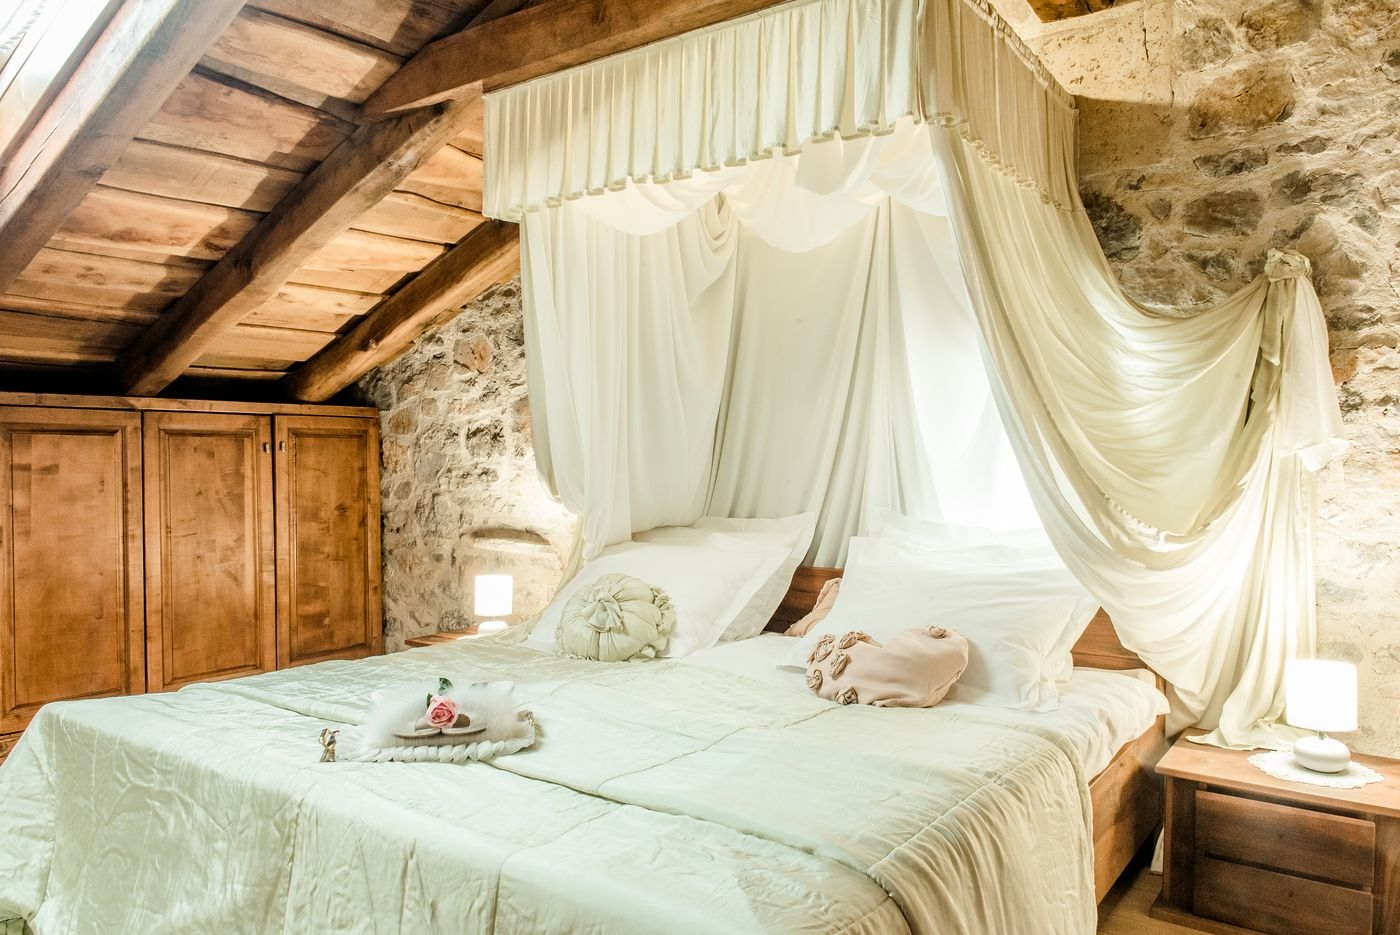 Master Bedroom Royal Suite Asa Residence Private Villa Kras Slovenia